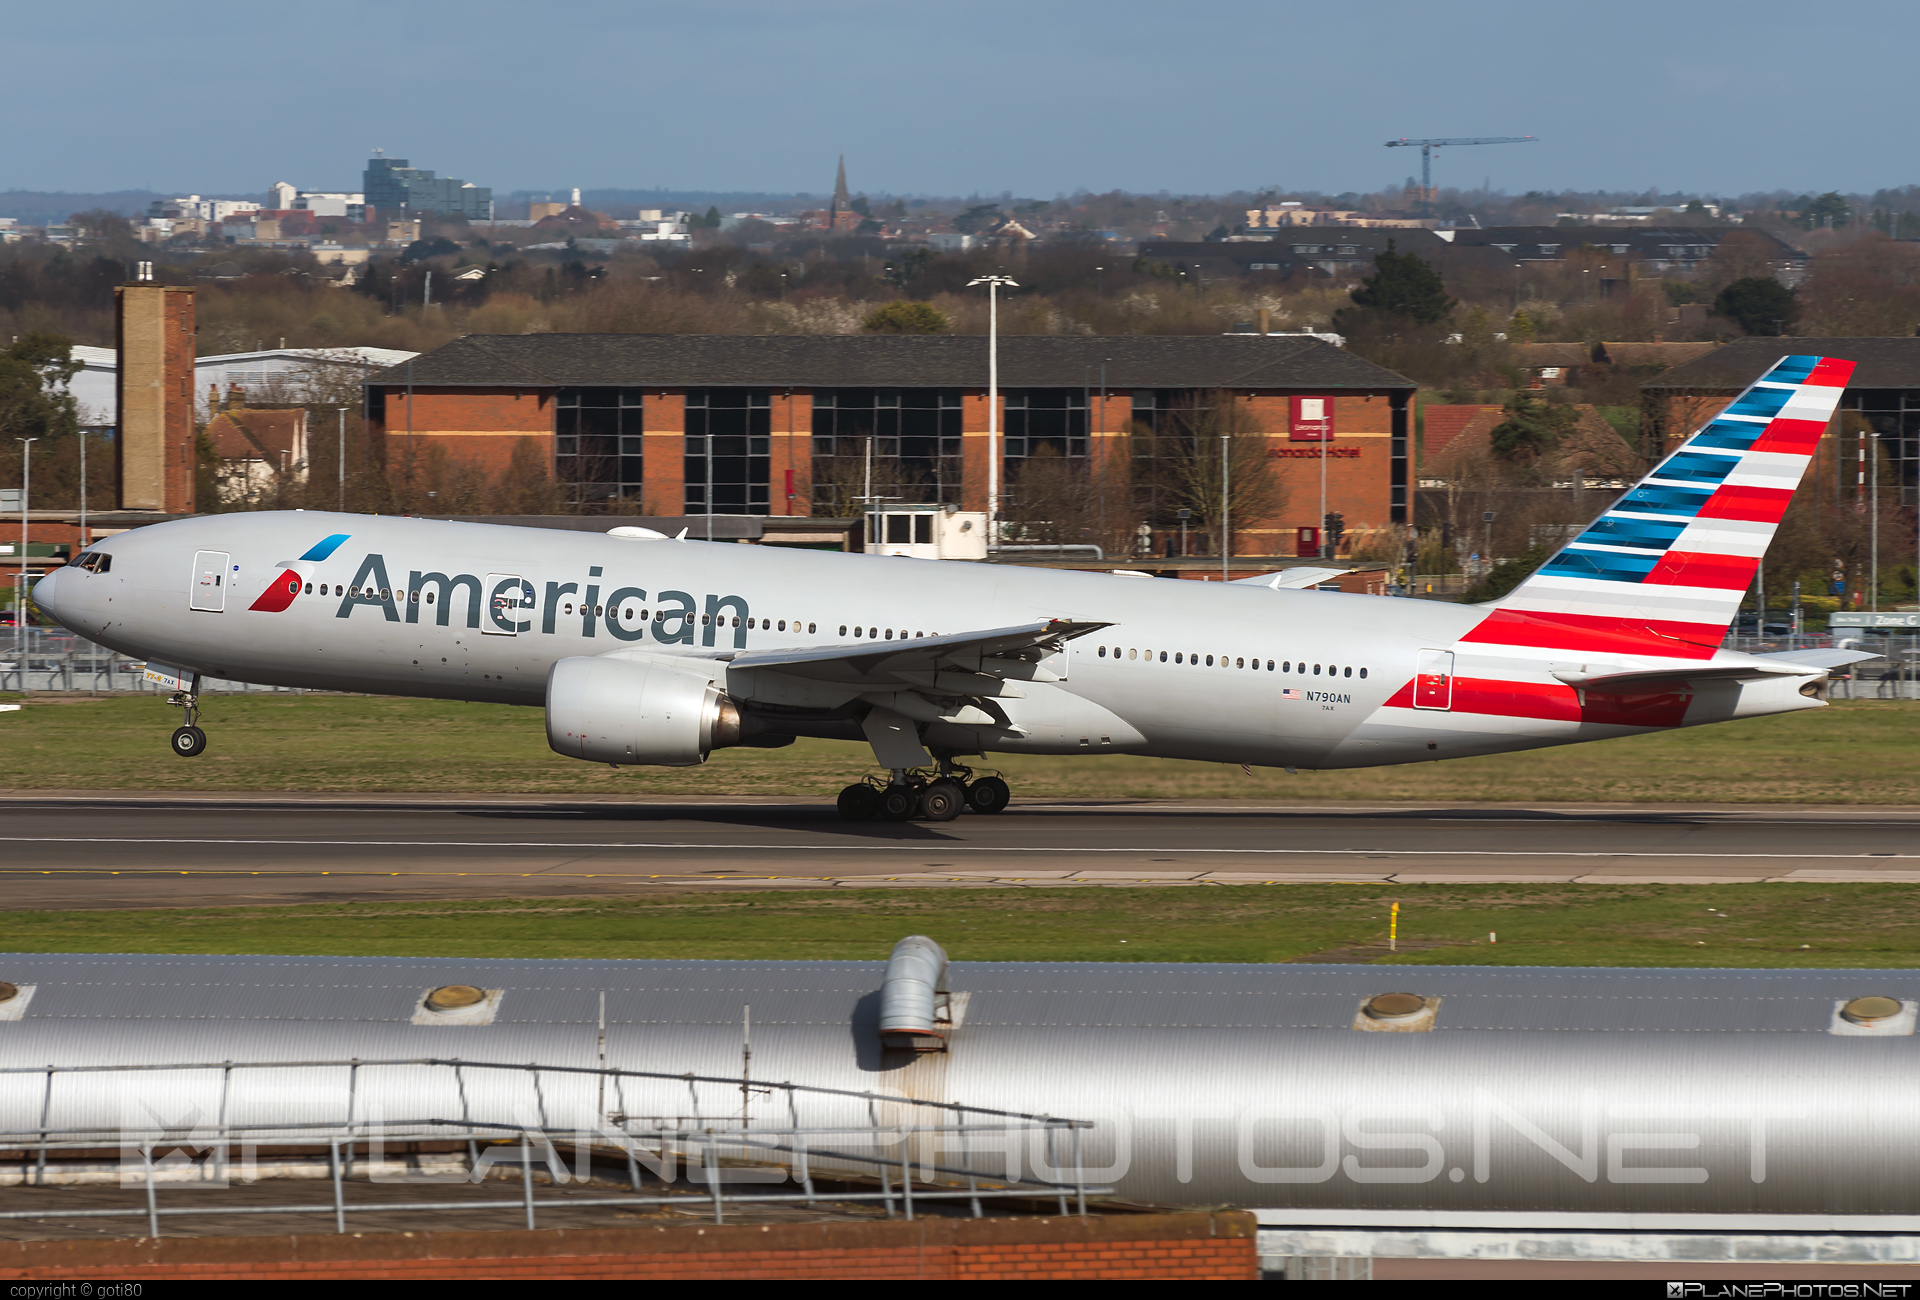 Boeing 777-200ER - N790AN operated by American Airlines #americanairlines #b777 #b777er #boeing #boeing777 #tripleseven